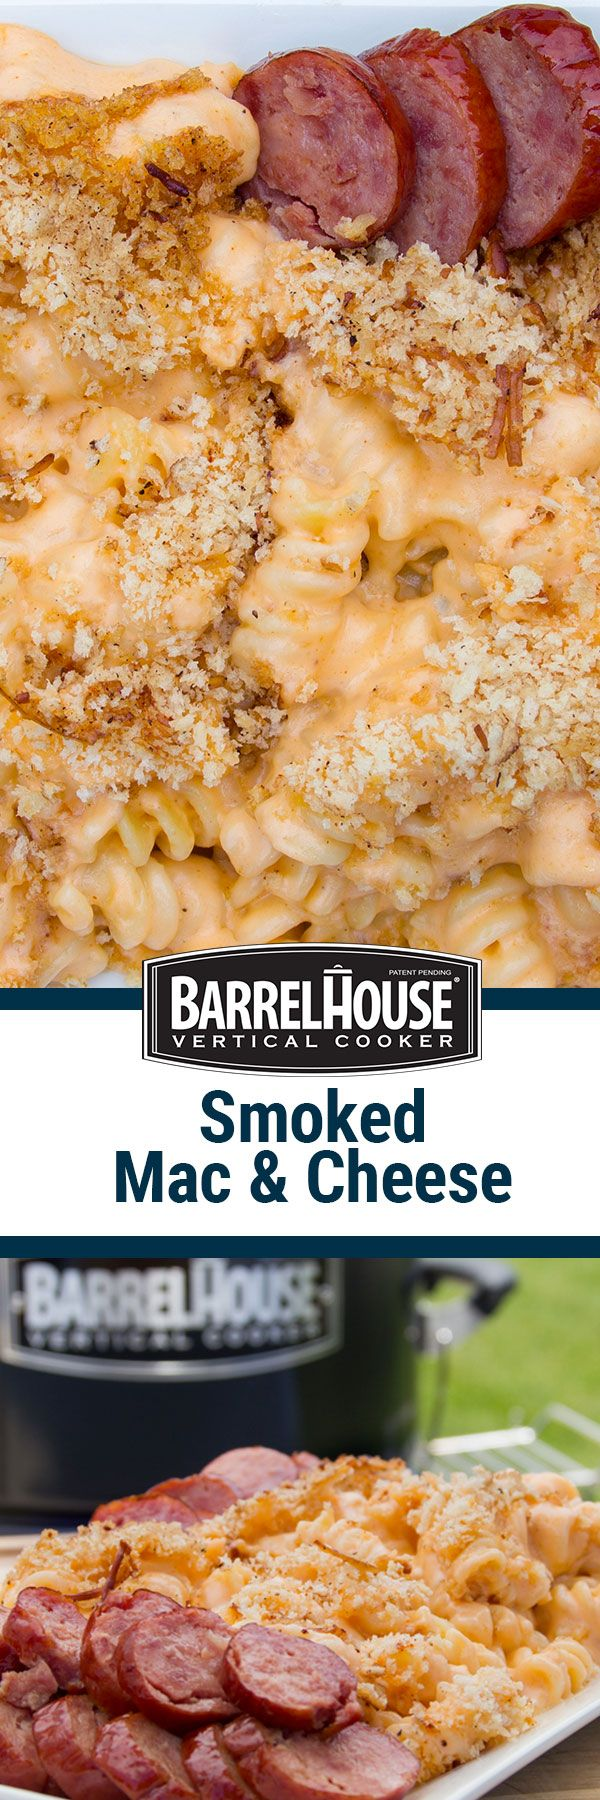 Rich, creamy 4-cheese mac and cheese featuring gouda, parmesan, cheddar, and cream cheese is taken up a notch by smoking it in your Barrel House Cooker, pellet grill (e.g. Traeger), or offset smoker. Don't have a smoker? This mac and cheese recipe tastes great baked in the oven! Pair this smoked mac & cheese with sausage, and you've got a delicious take on some classic comfort food.